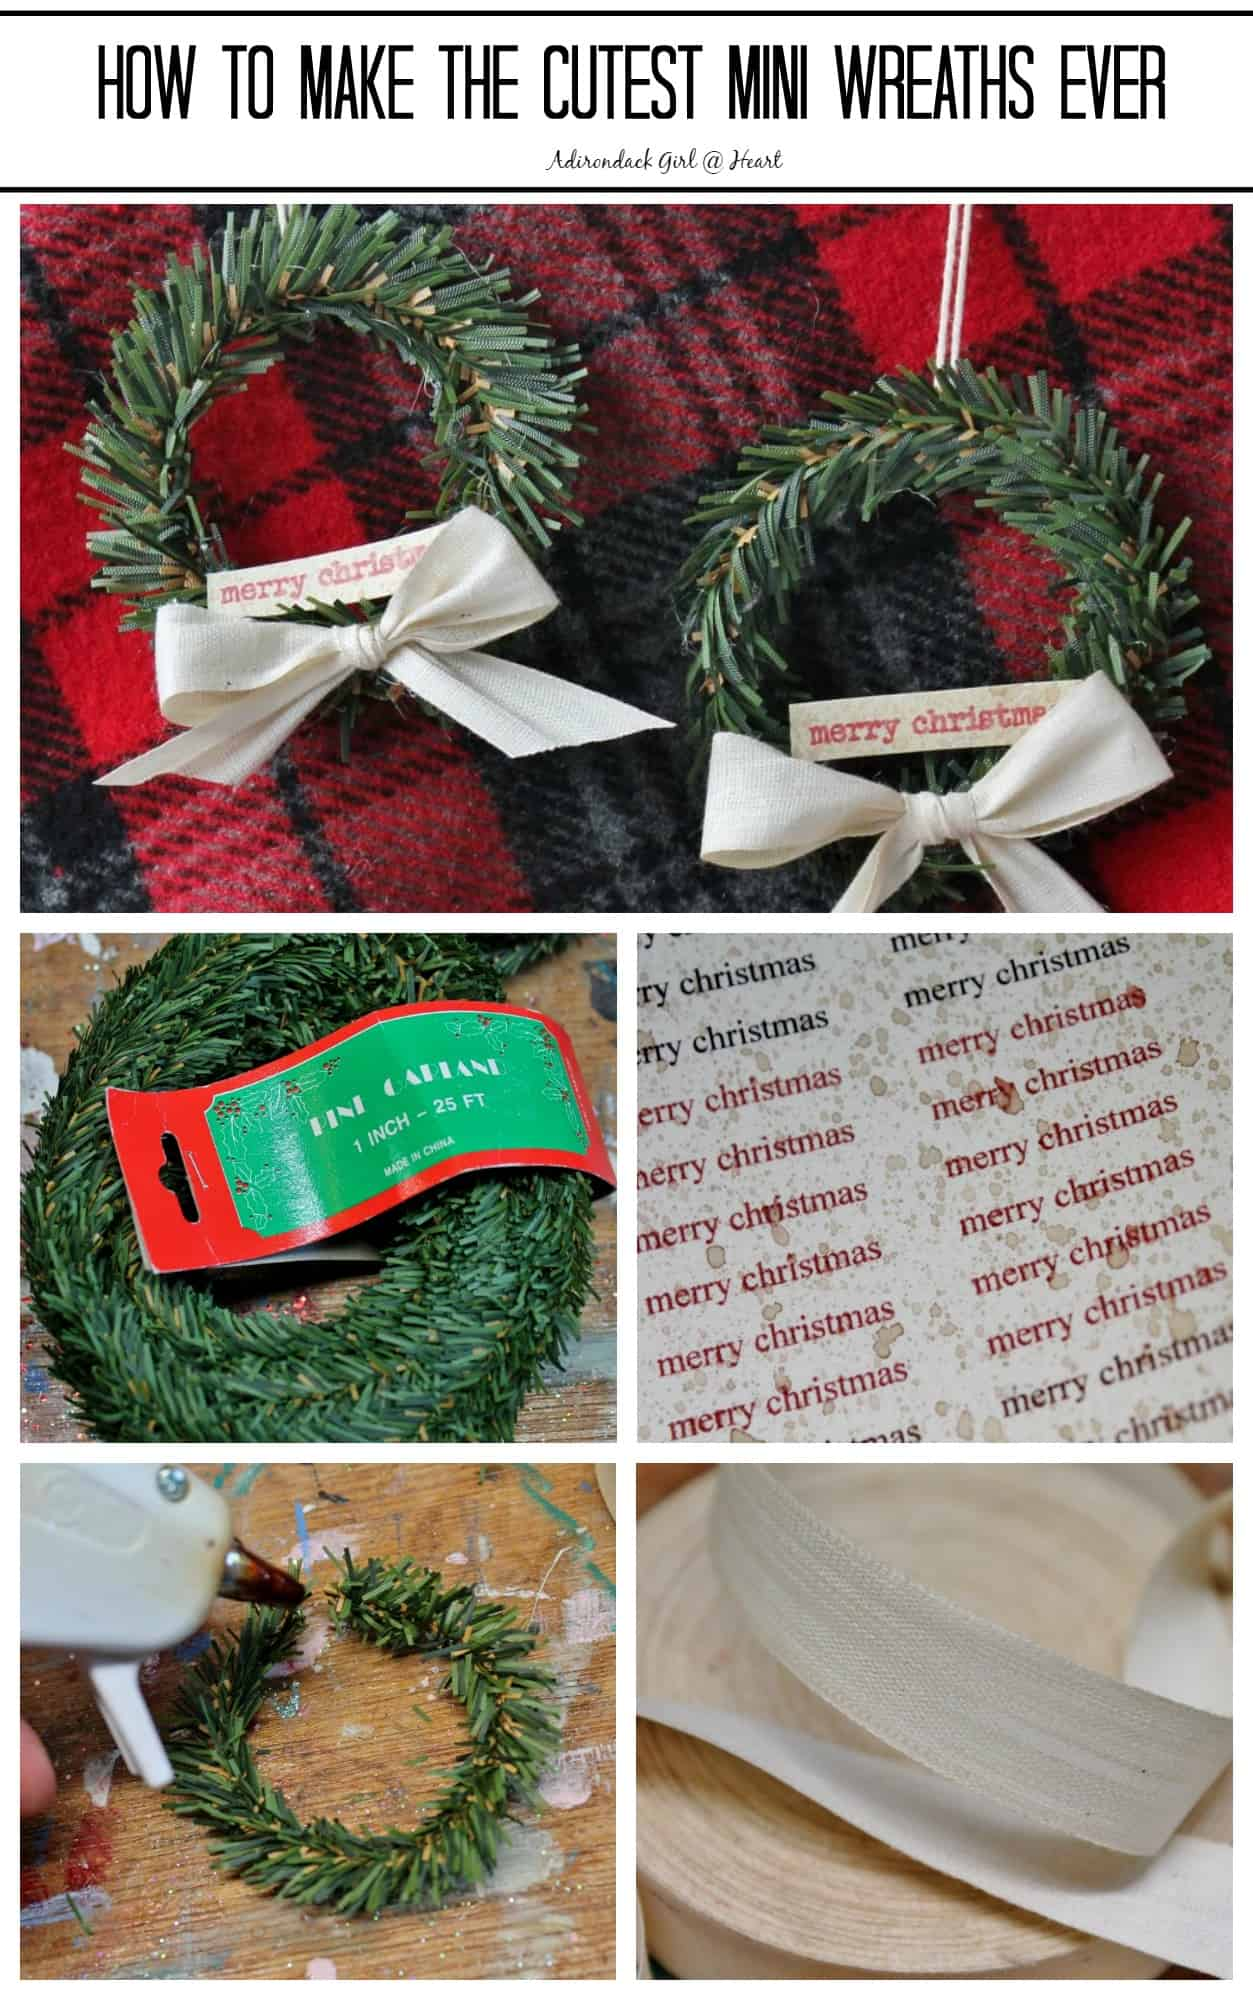 how-to-make-the-cutest-mini-wreath-ever-collage